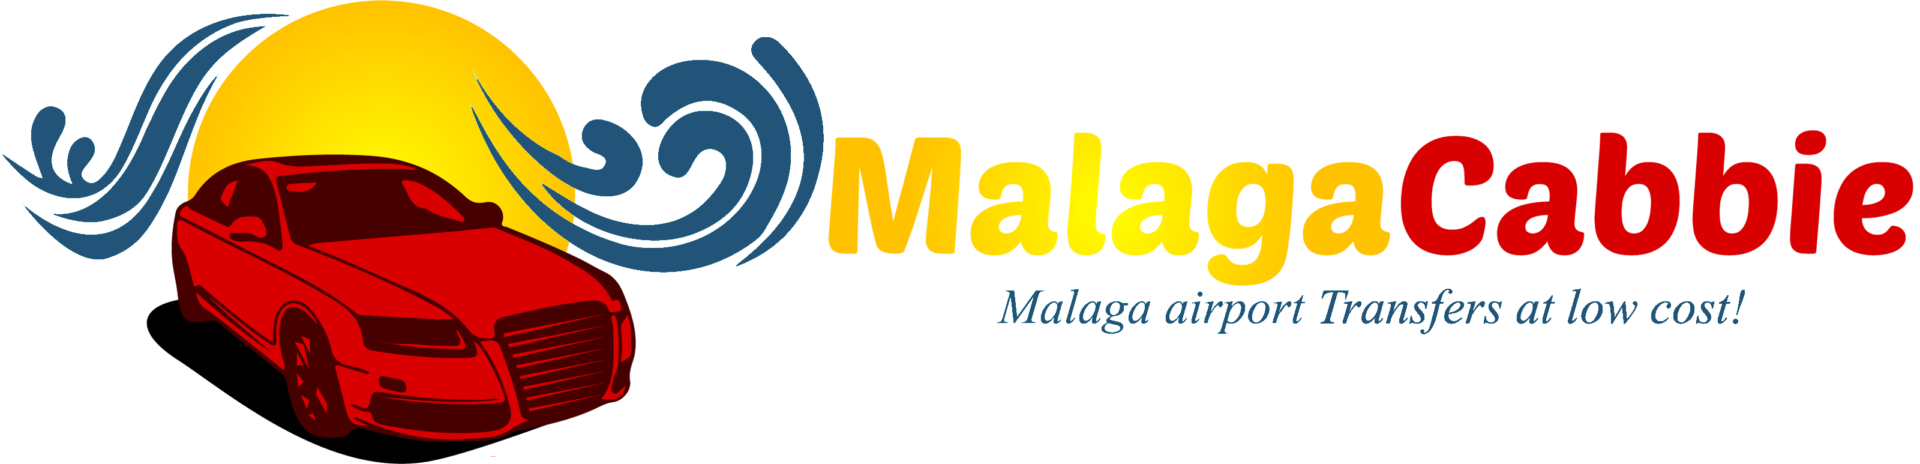 Malaga Cabbie | Malaga Airport Transfers - Quality Transfers at Low Cost